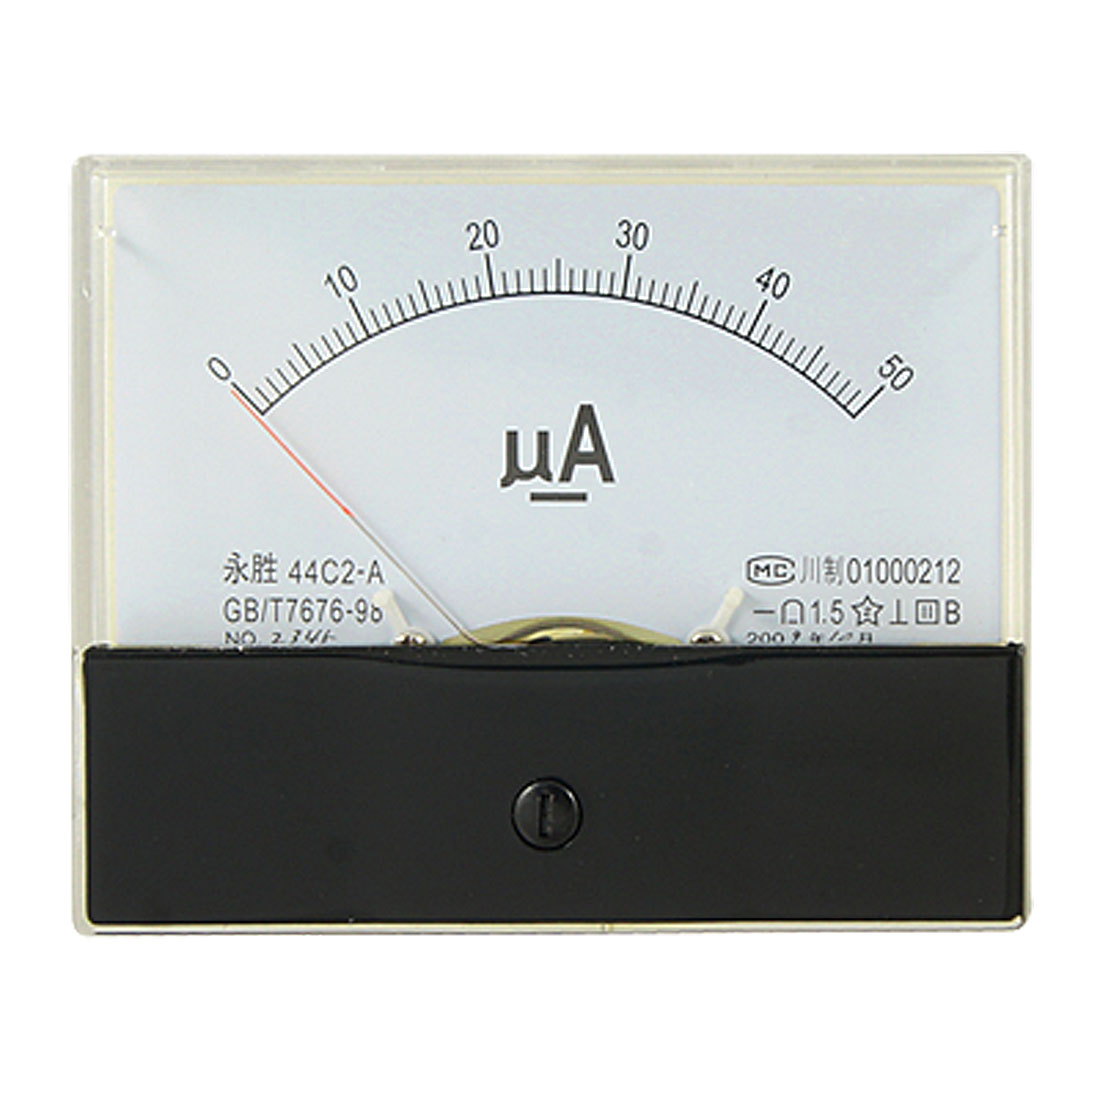 DC 0-50uA Scale Range Current Panel Meter Amperemeter Gauge